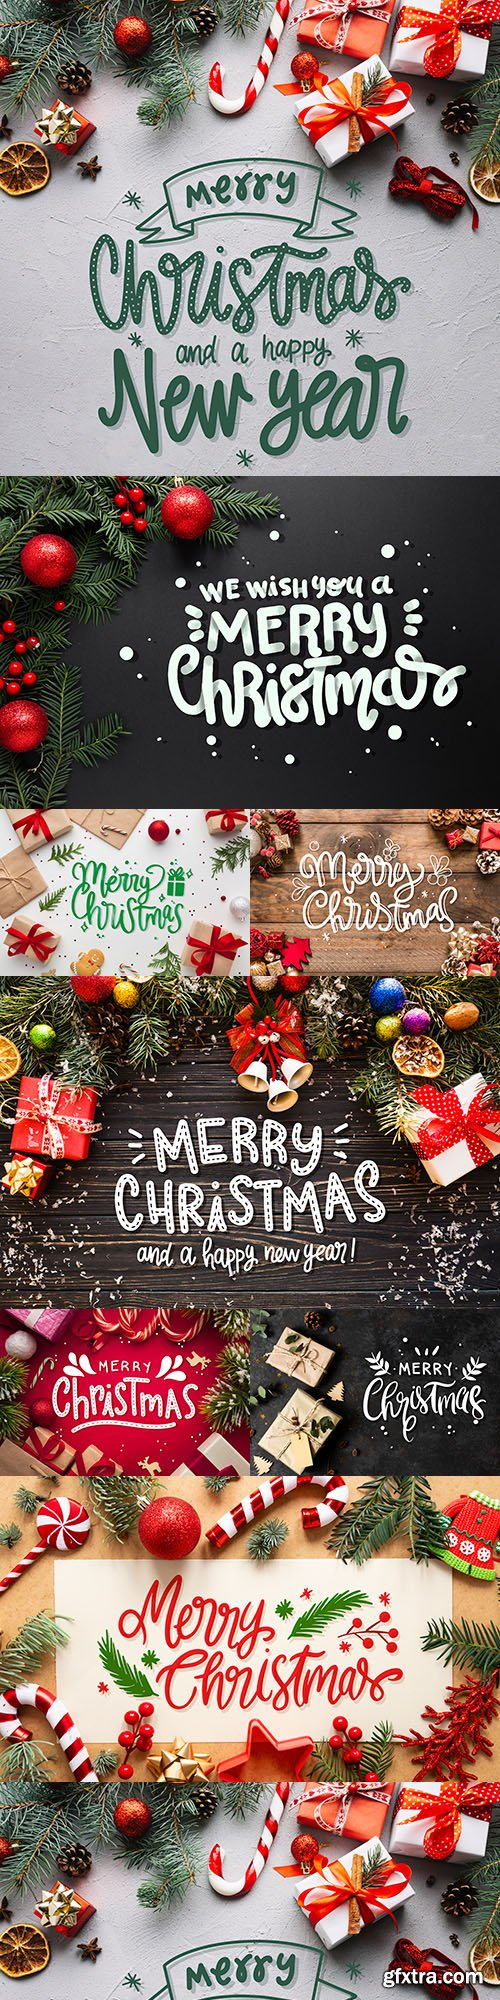 Merry Christmas and New Year background decorative 31